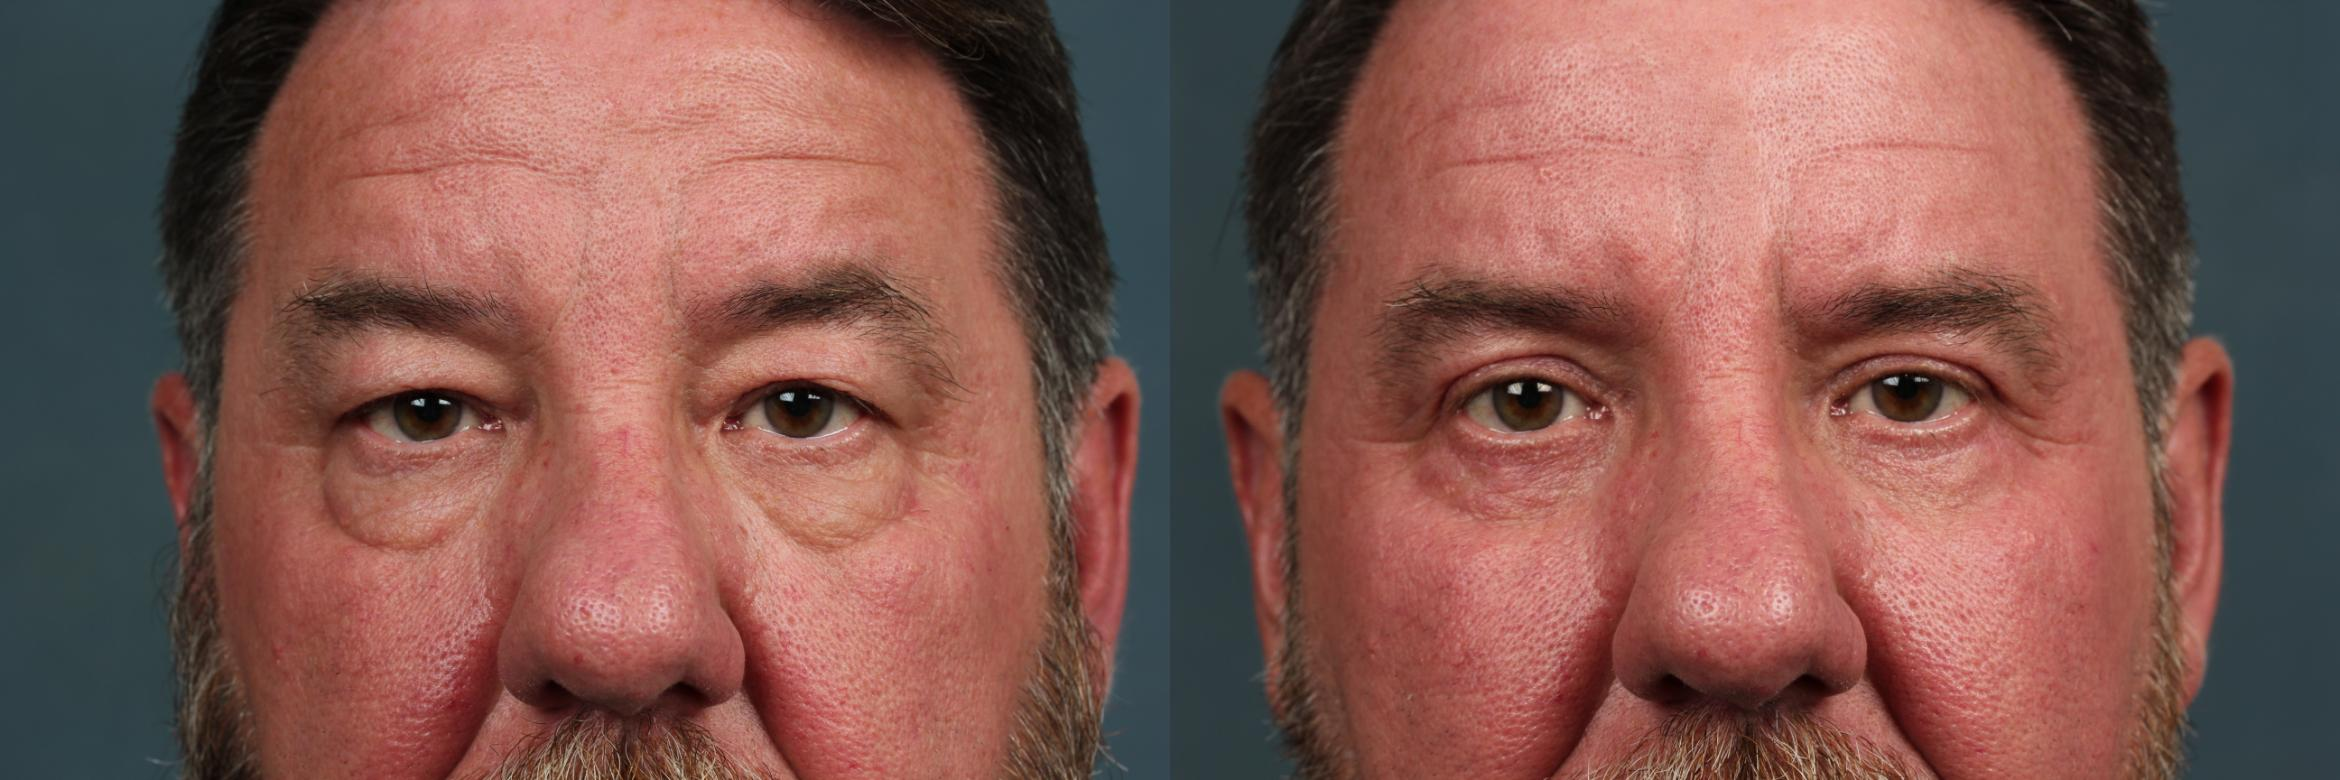 Eyelid Surgery Case 728 Before & After Front | Louisville, KY | CaloAesthetics® Plastic Surgery Center